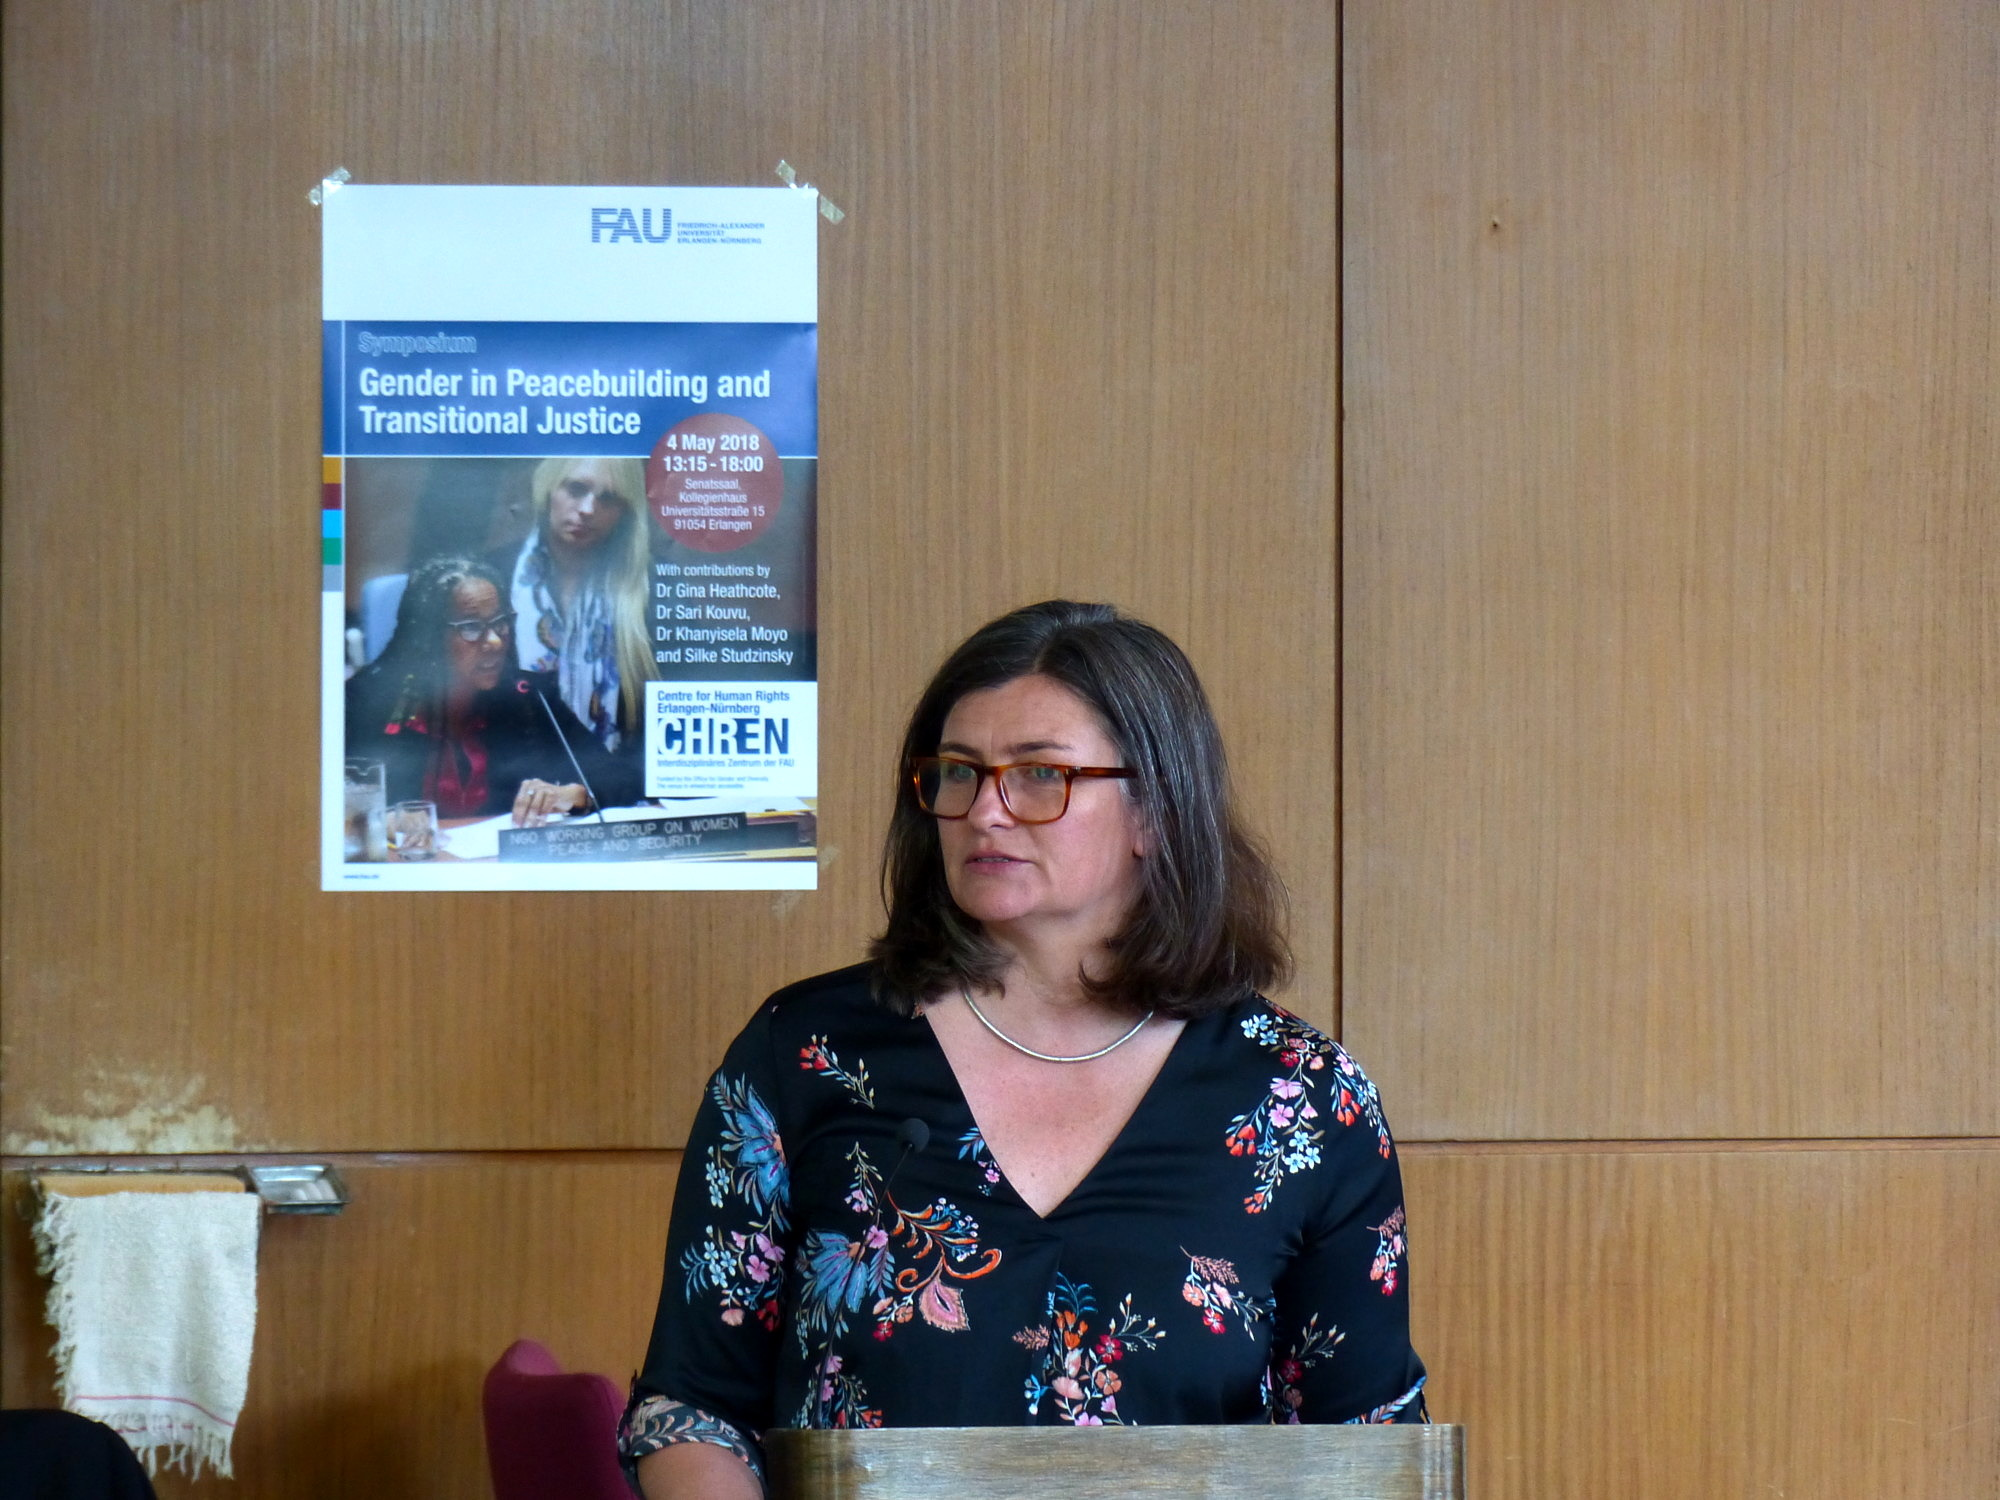 Dr. Gina Heathcote speaks at the Symposium on Gender and Peacebuilding and Transitional Justice